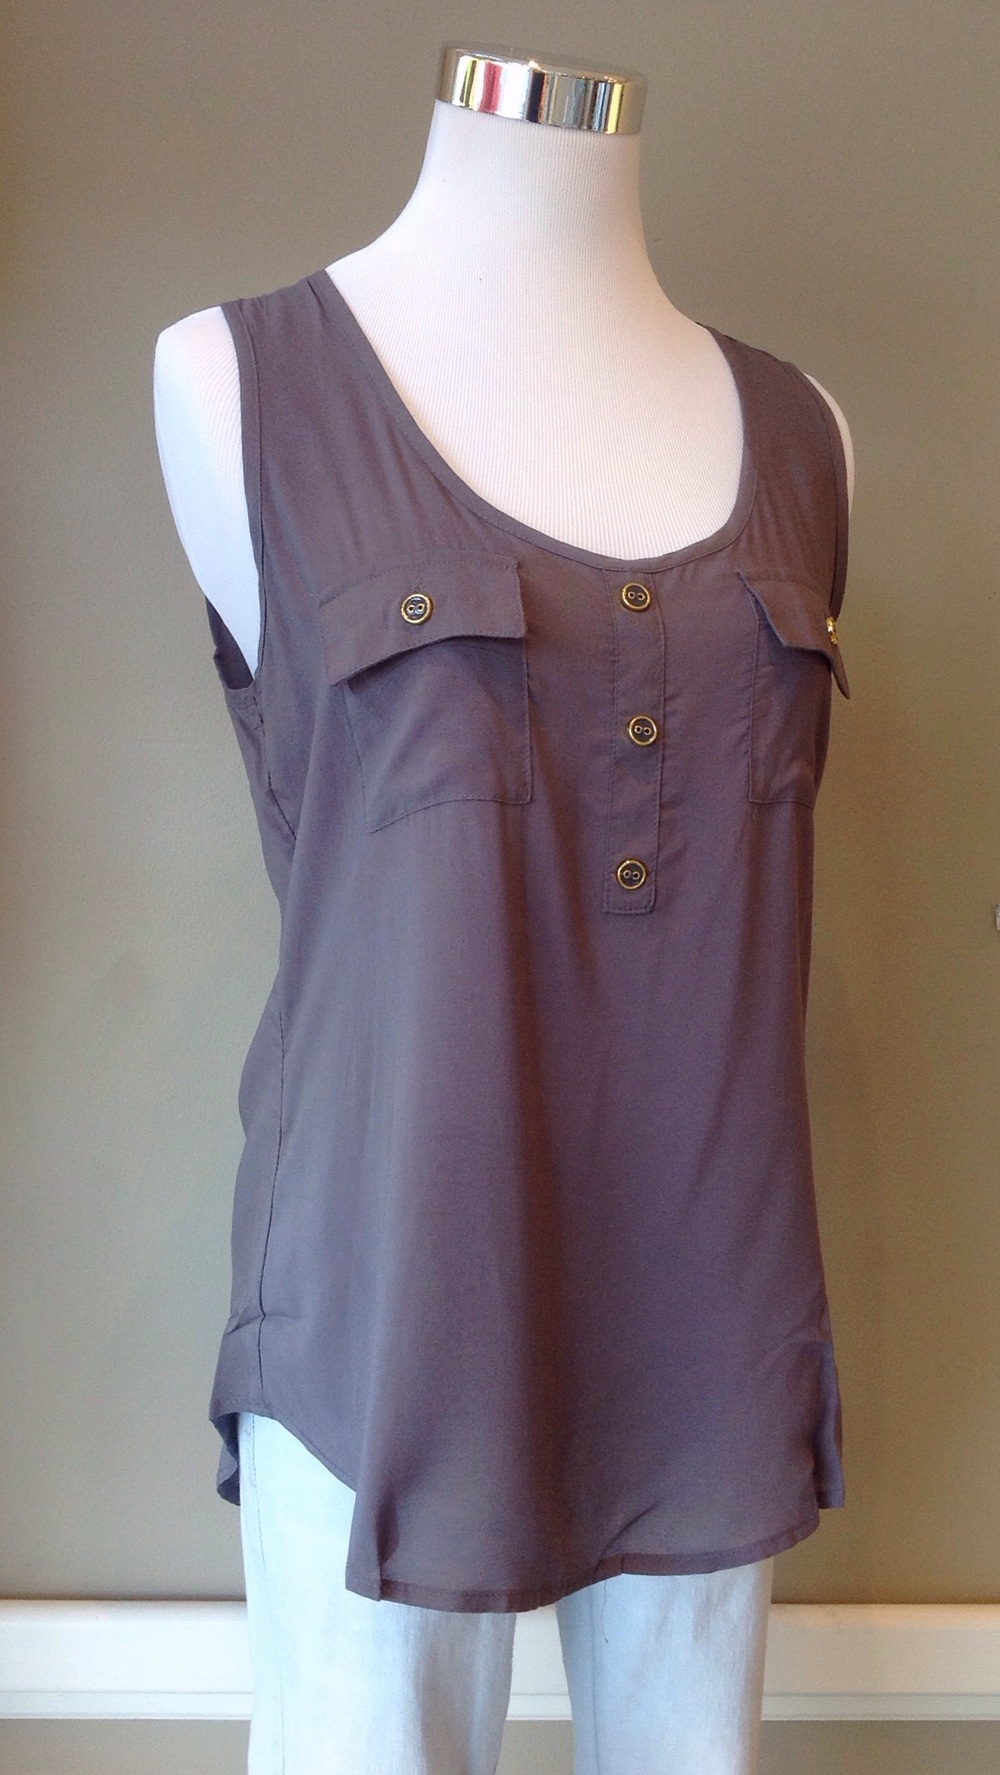 Rayon voile tank top with pocket detail in grey, $26